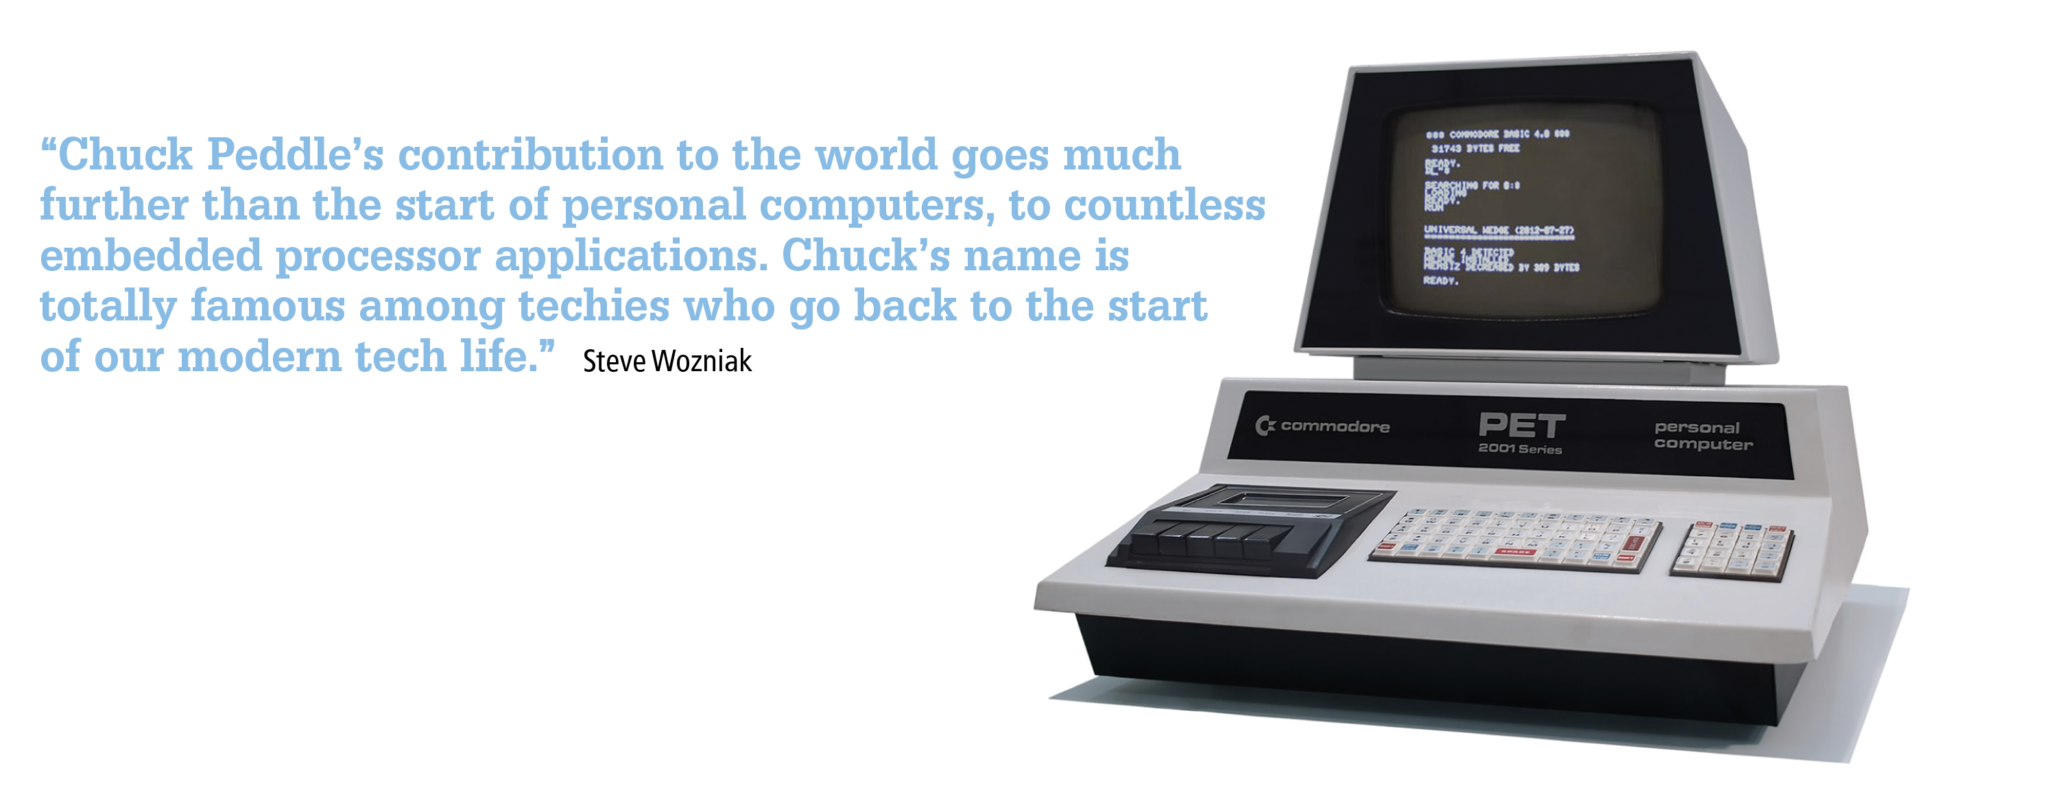 """Chuck Peddle's contribution to the world goes much further than the start of personal computers, to countless embedded processor applications. Chuck's name is totally famous among techies who go back to the start of our modern tech life."" Steve Wozniak"